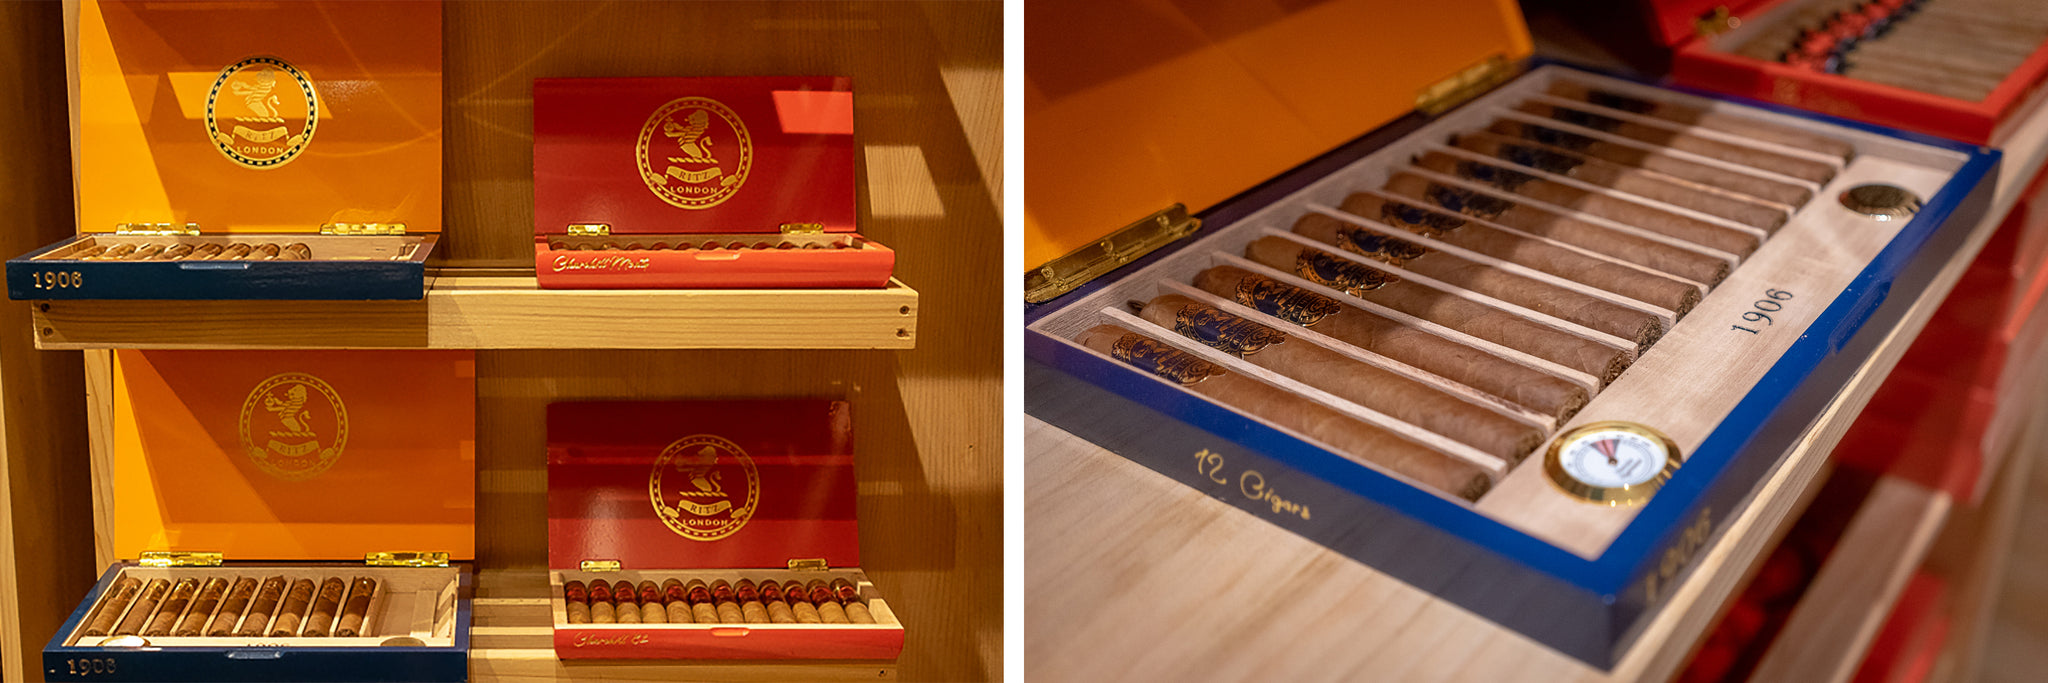 Ritz London Cigars - EGM Cigars